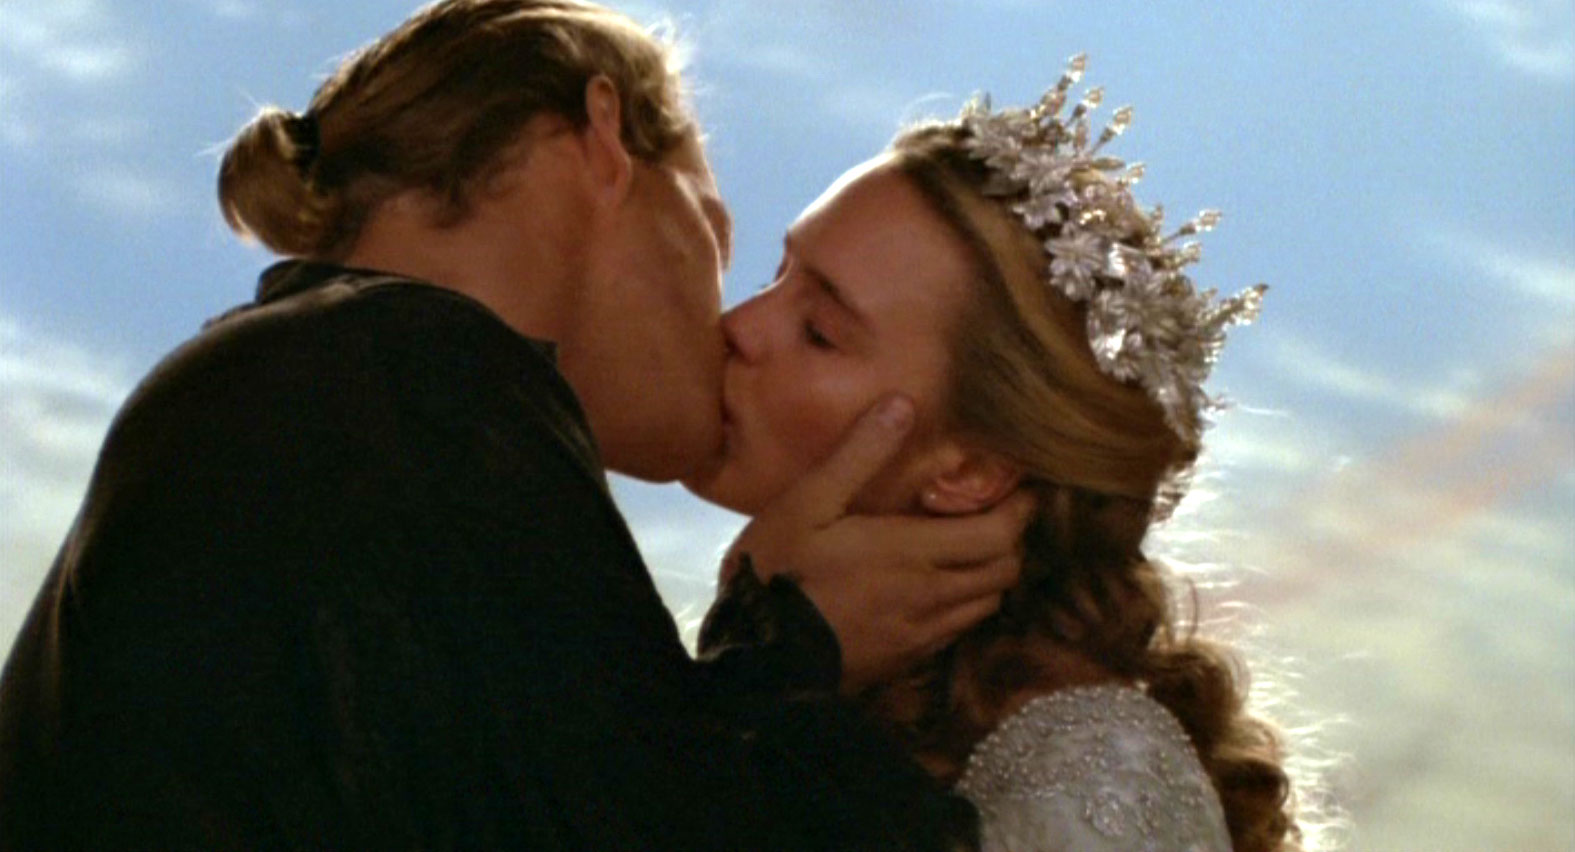 Cary Elwes as Westley and Robin Wright as Buttercup The Princess Bride picture image